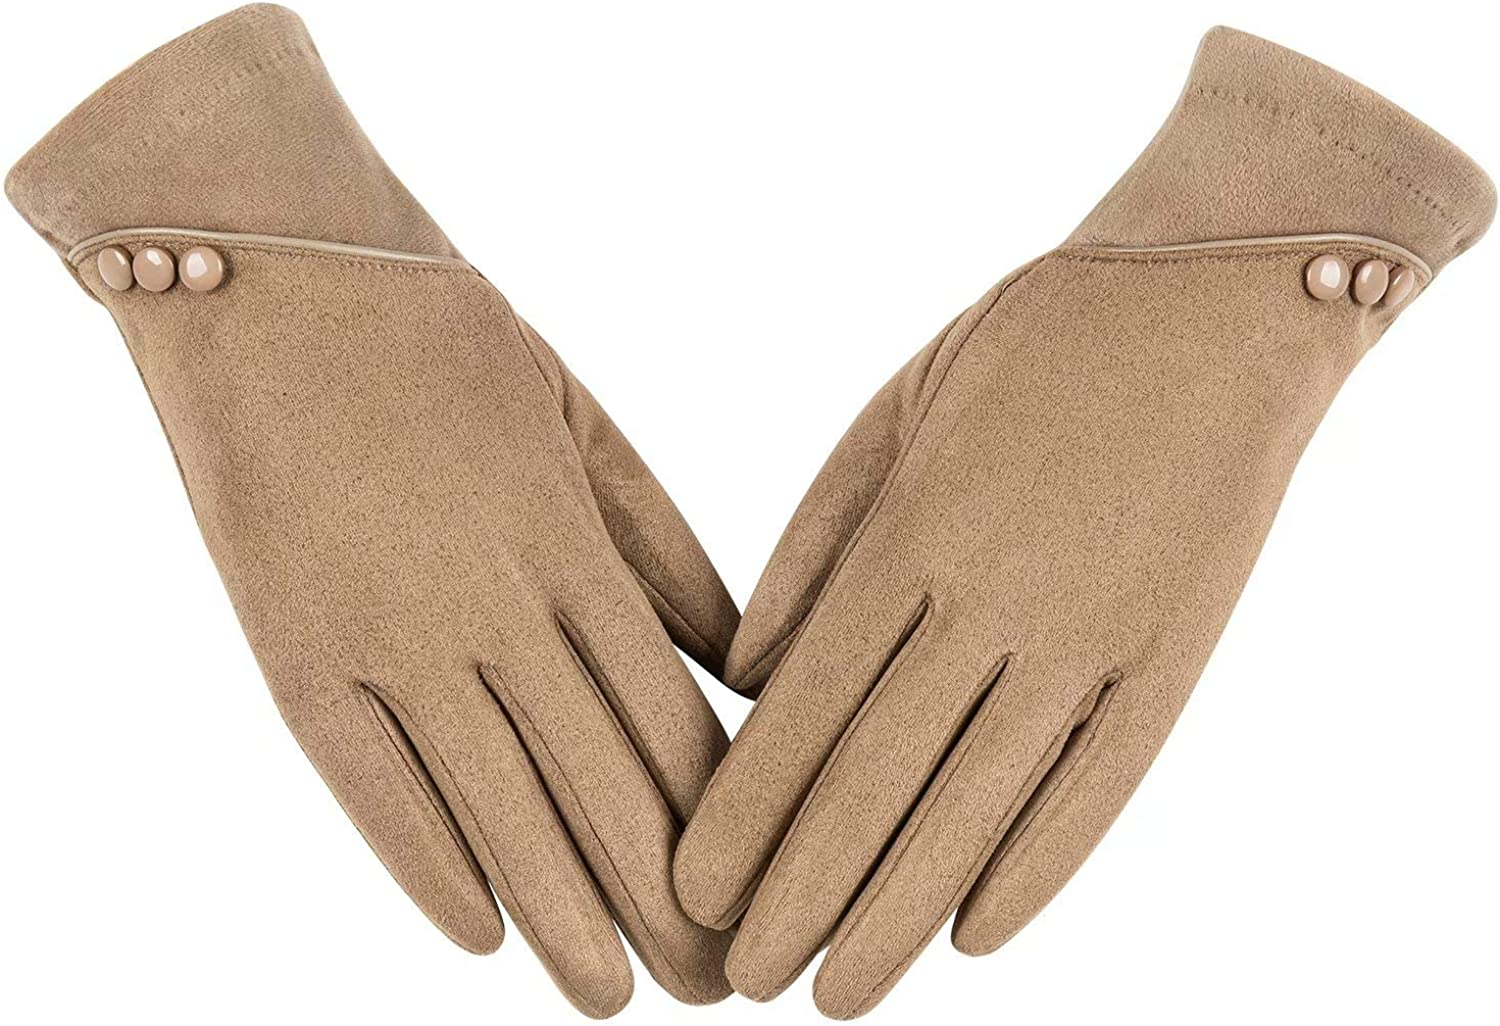 Womens Winter Warm Gloves With Sensitive Touch Screen Texting Fingers, Fleece Lined Windproof Gloves